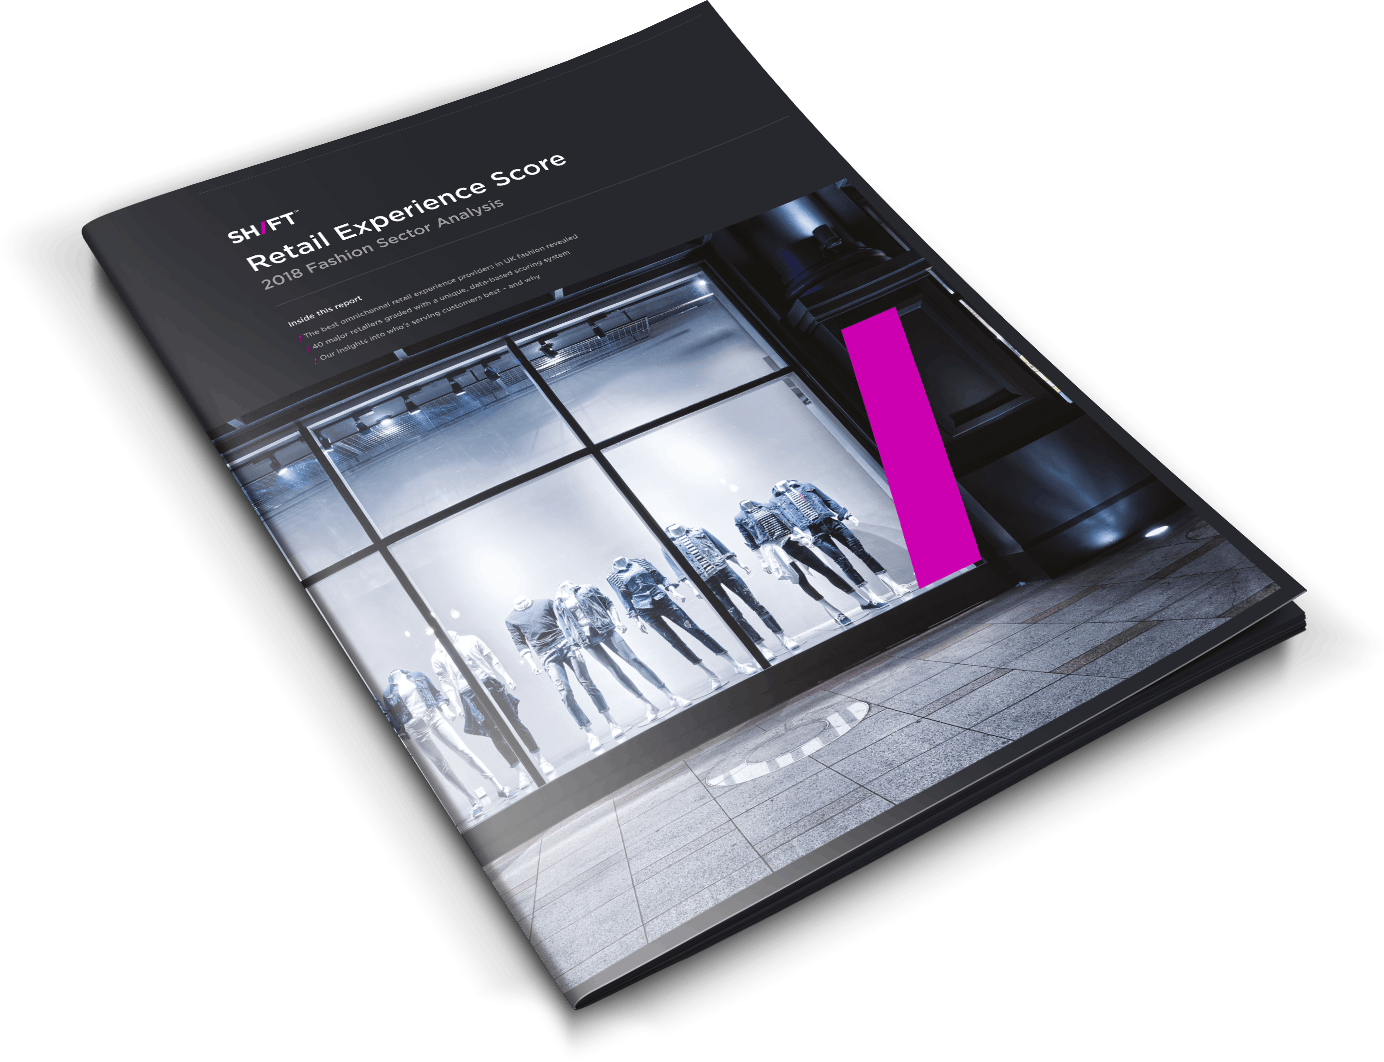 The 2018 Retail Experience Score (RES) Fashion Analysis